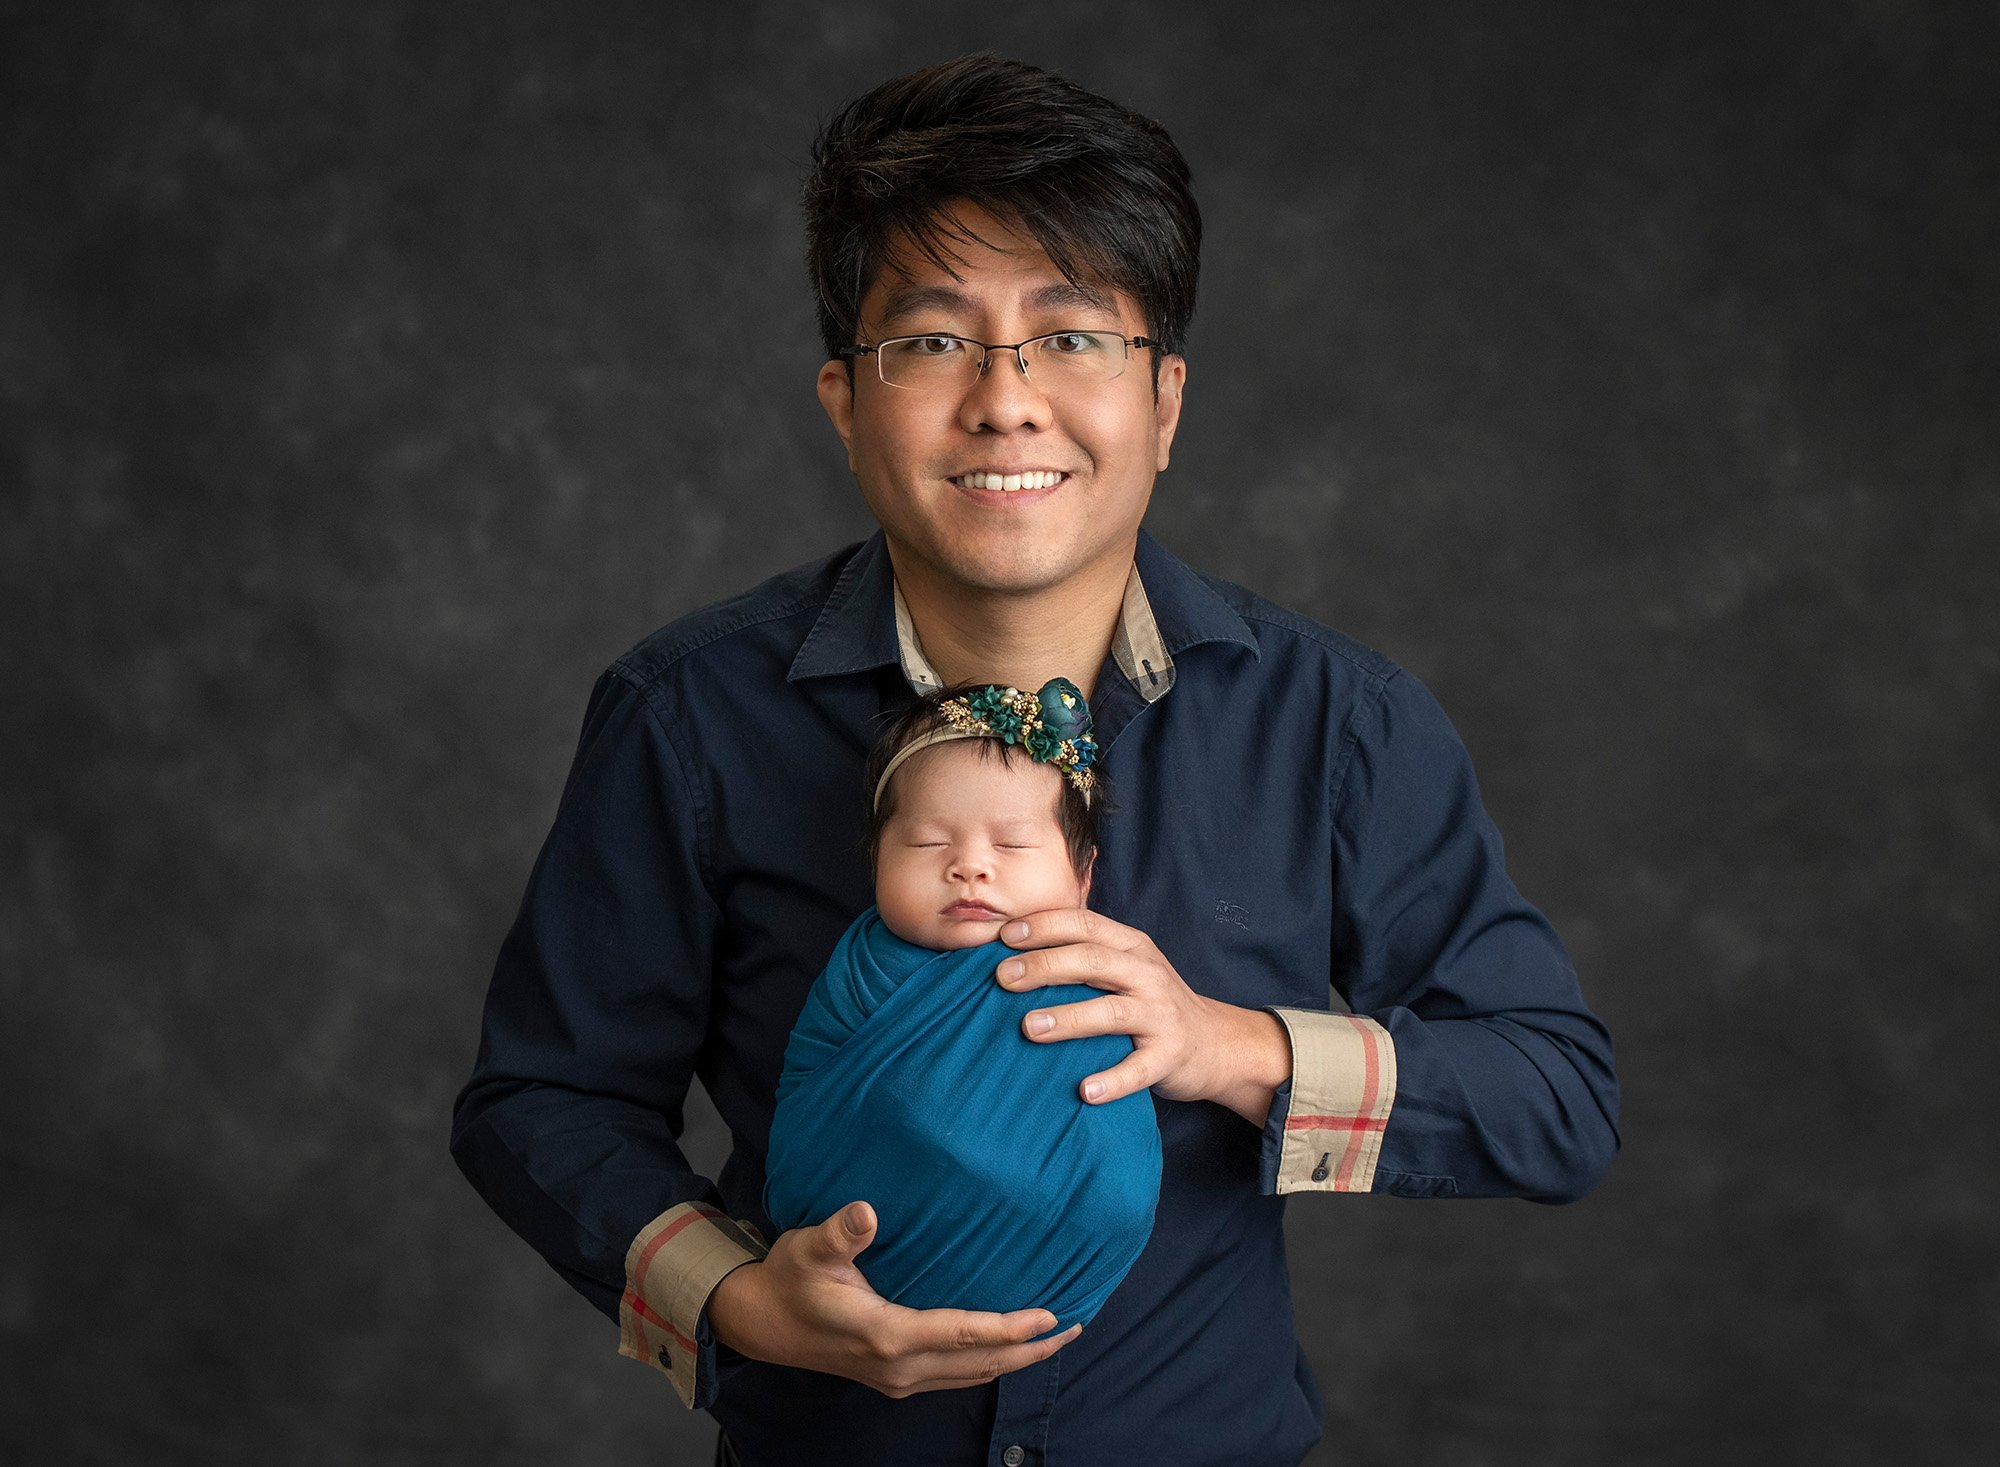 new dad wearing Burberry button up holding newborn baby girl swaddled in dark teal wrap wearing teal floral headband on dark grey background